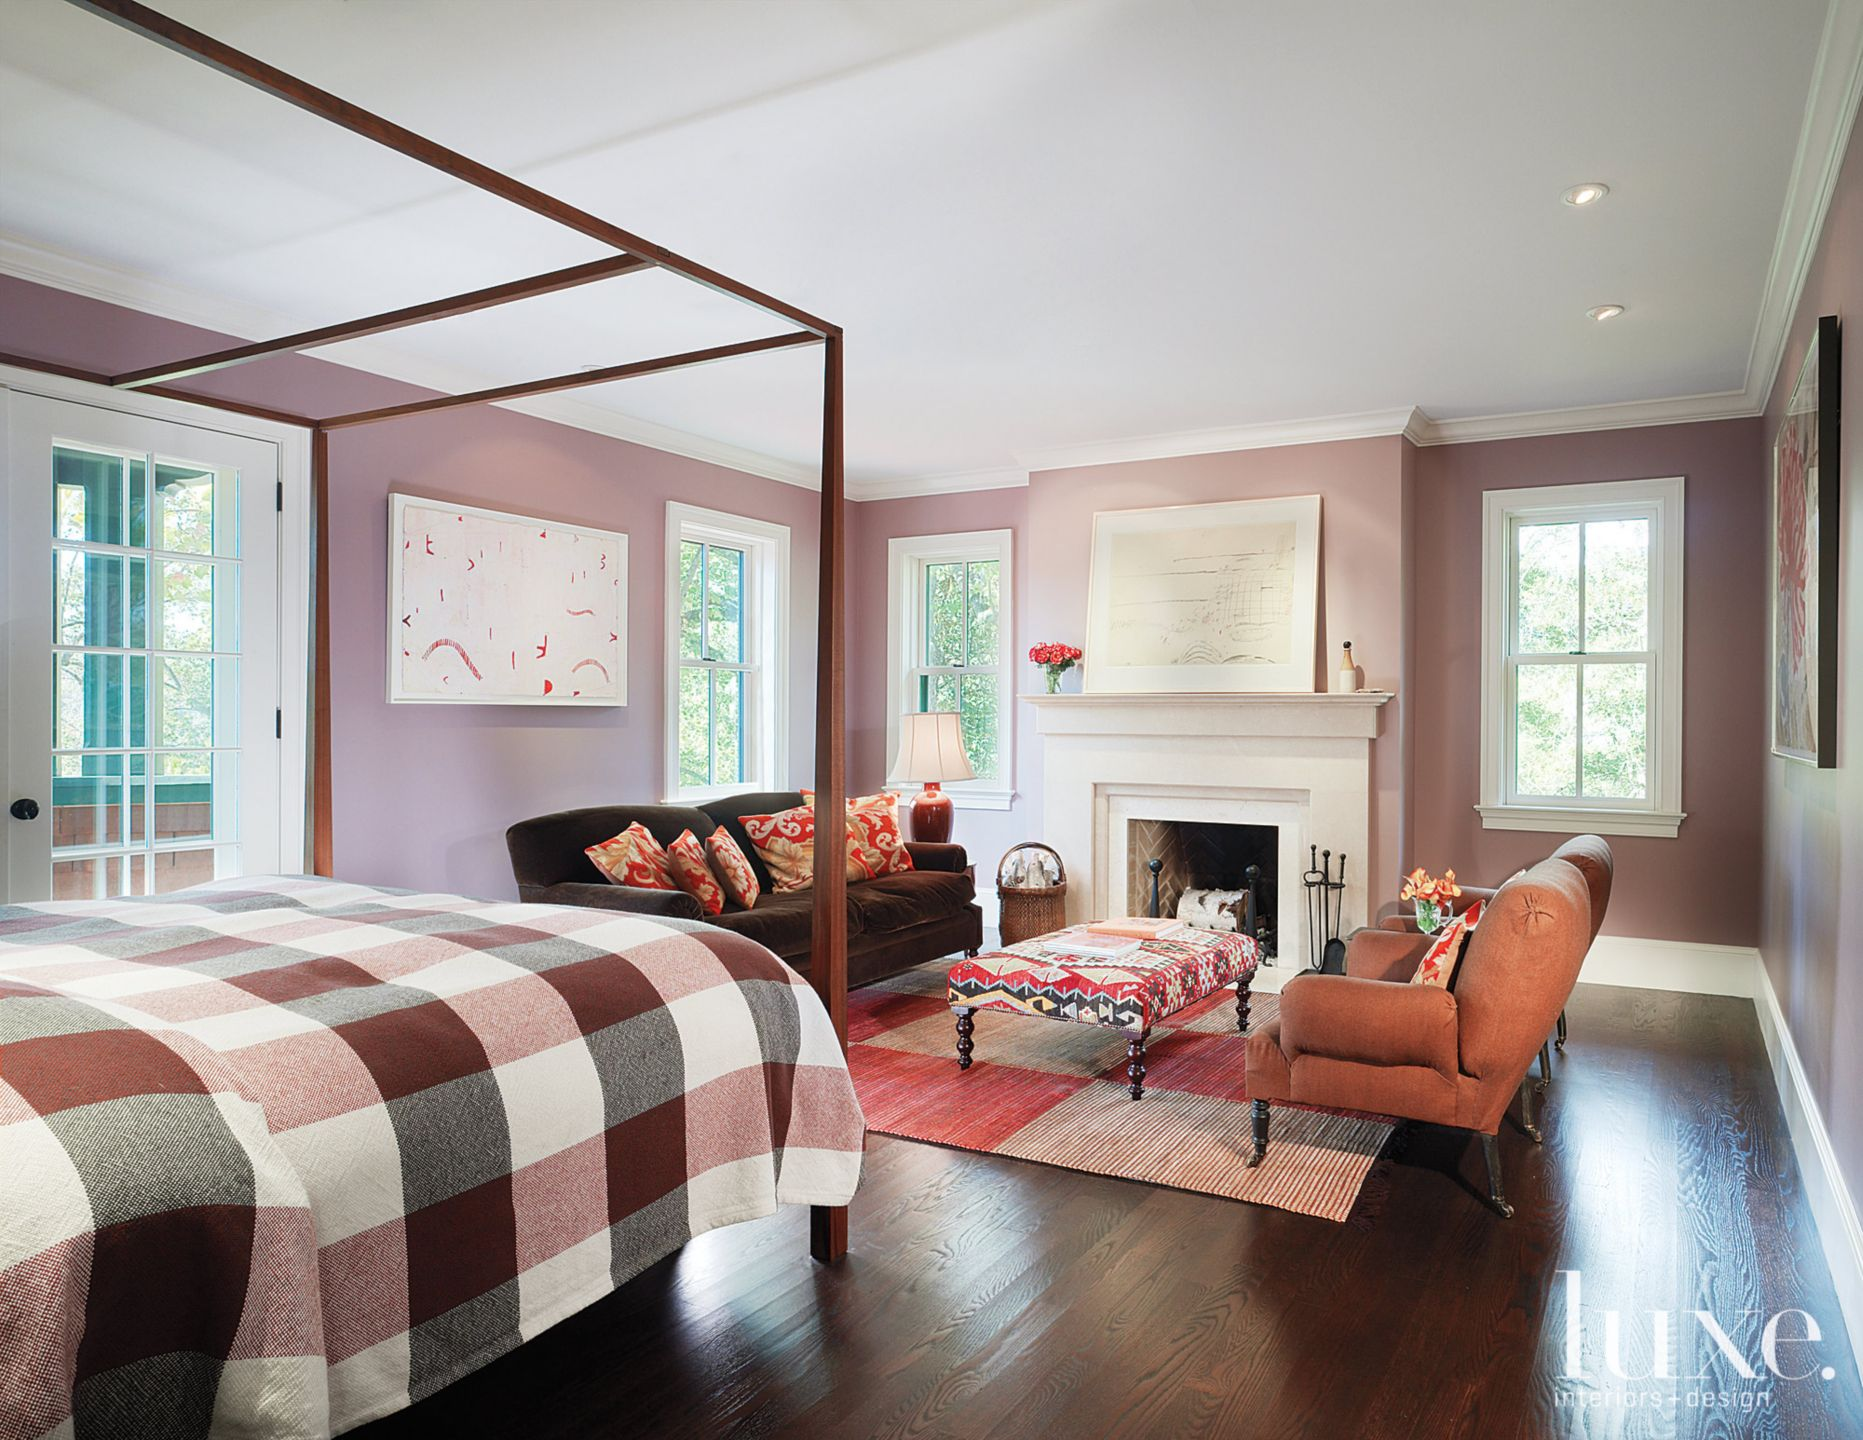 Country Purple Bedroom with Fireplace-side Seating Area